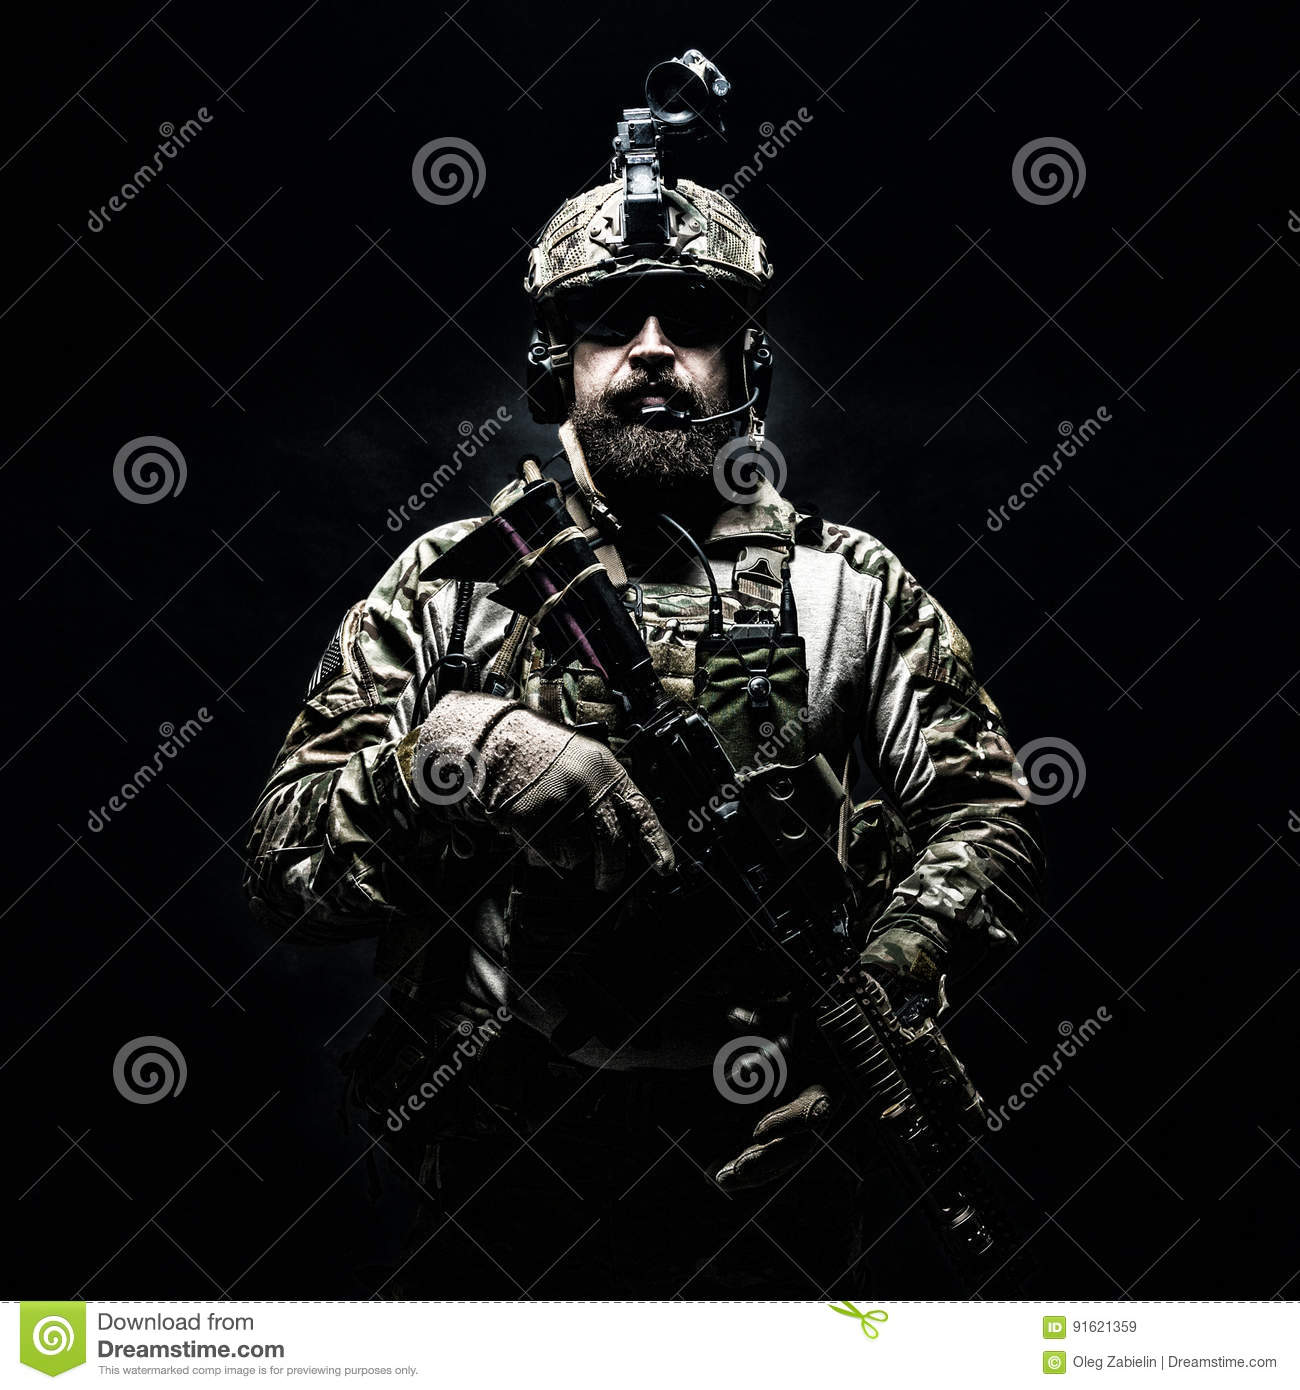 Army Ranger In Field Uniforms Stock Image - Image of clothes